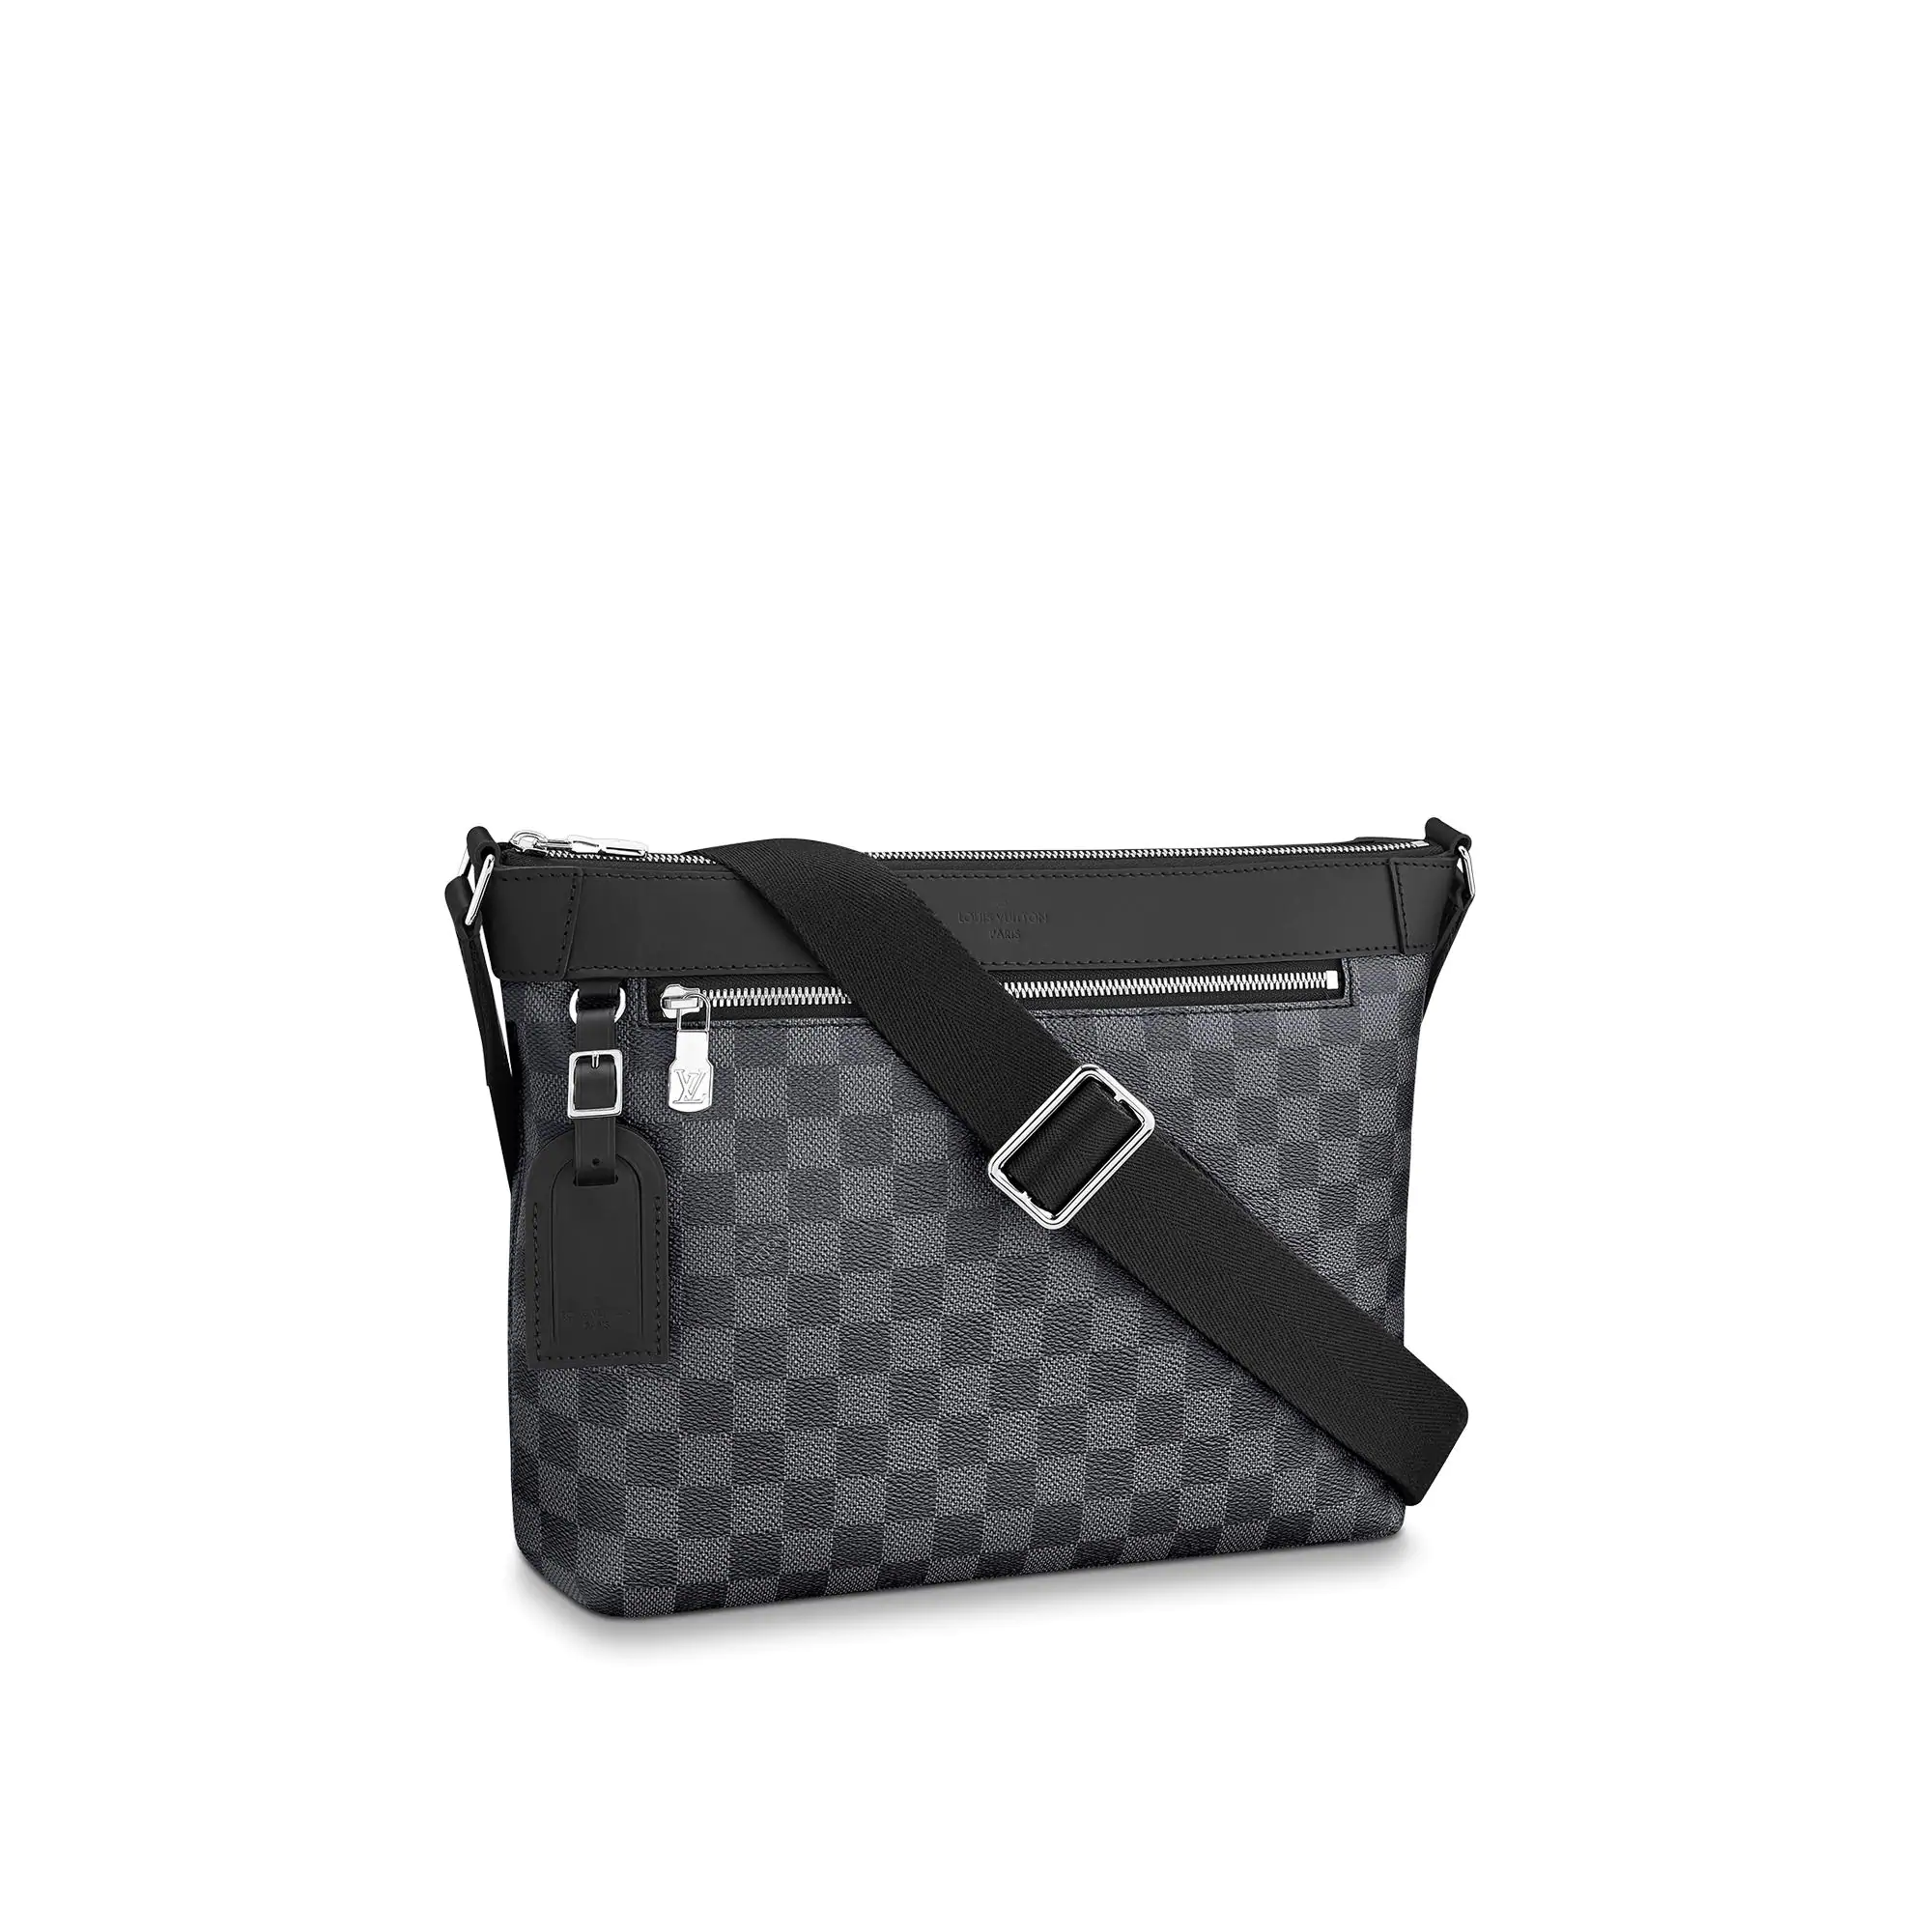 Louis Vuitton Mick Small Messenger Shoulder Bag in Damier Graphite Canvas N40003 bag